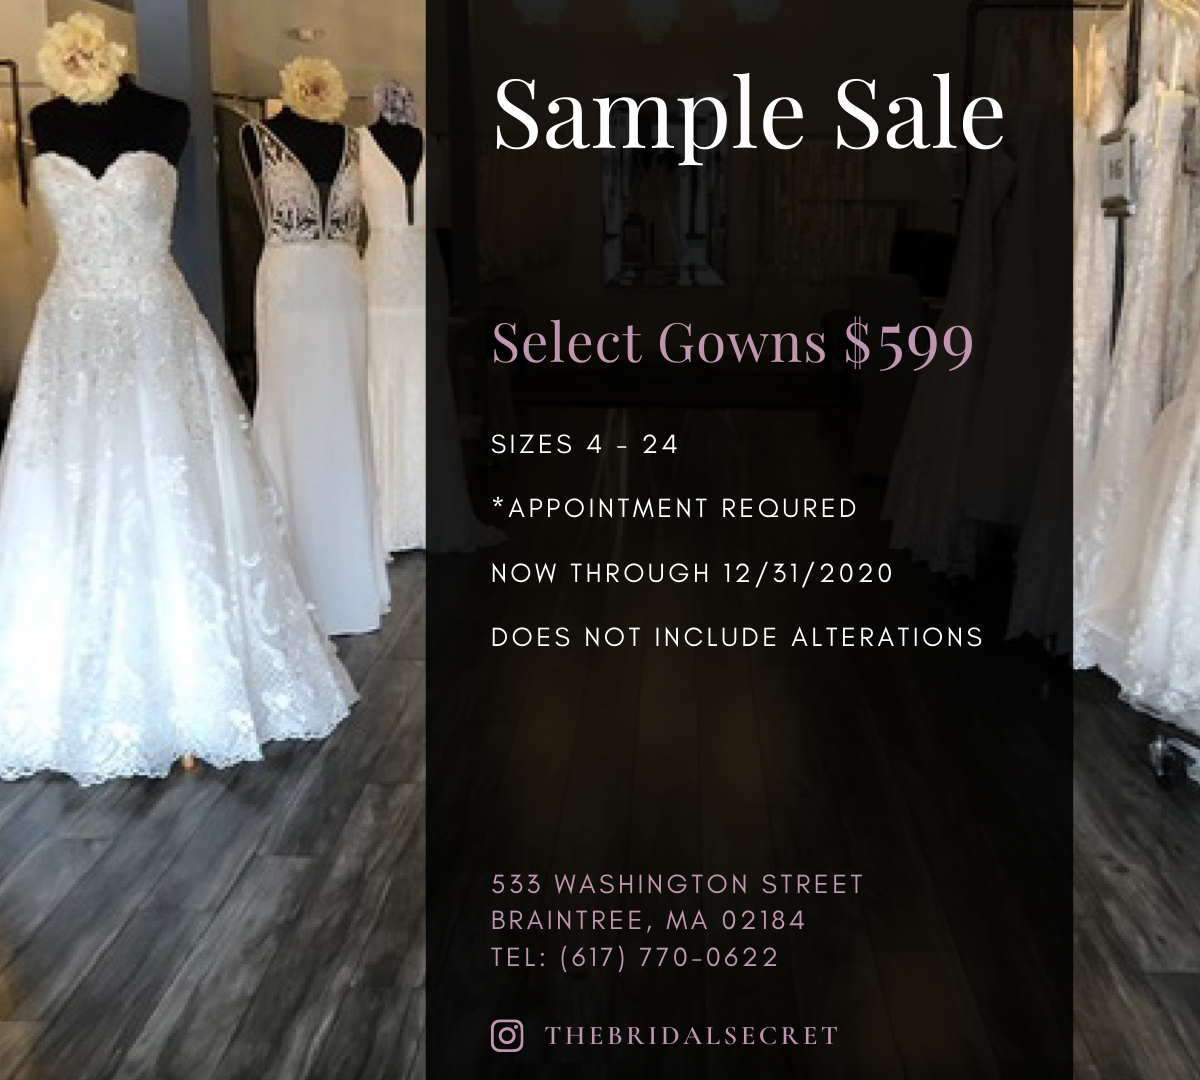 The Bridal Secret is holding a sample sale through December 31, 2020. Select Gowns are $599, sizes 4 - 24. Appointment Required. Does not include alterations.